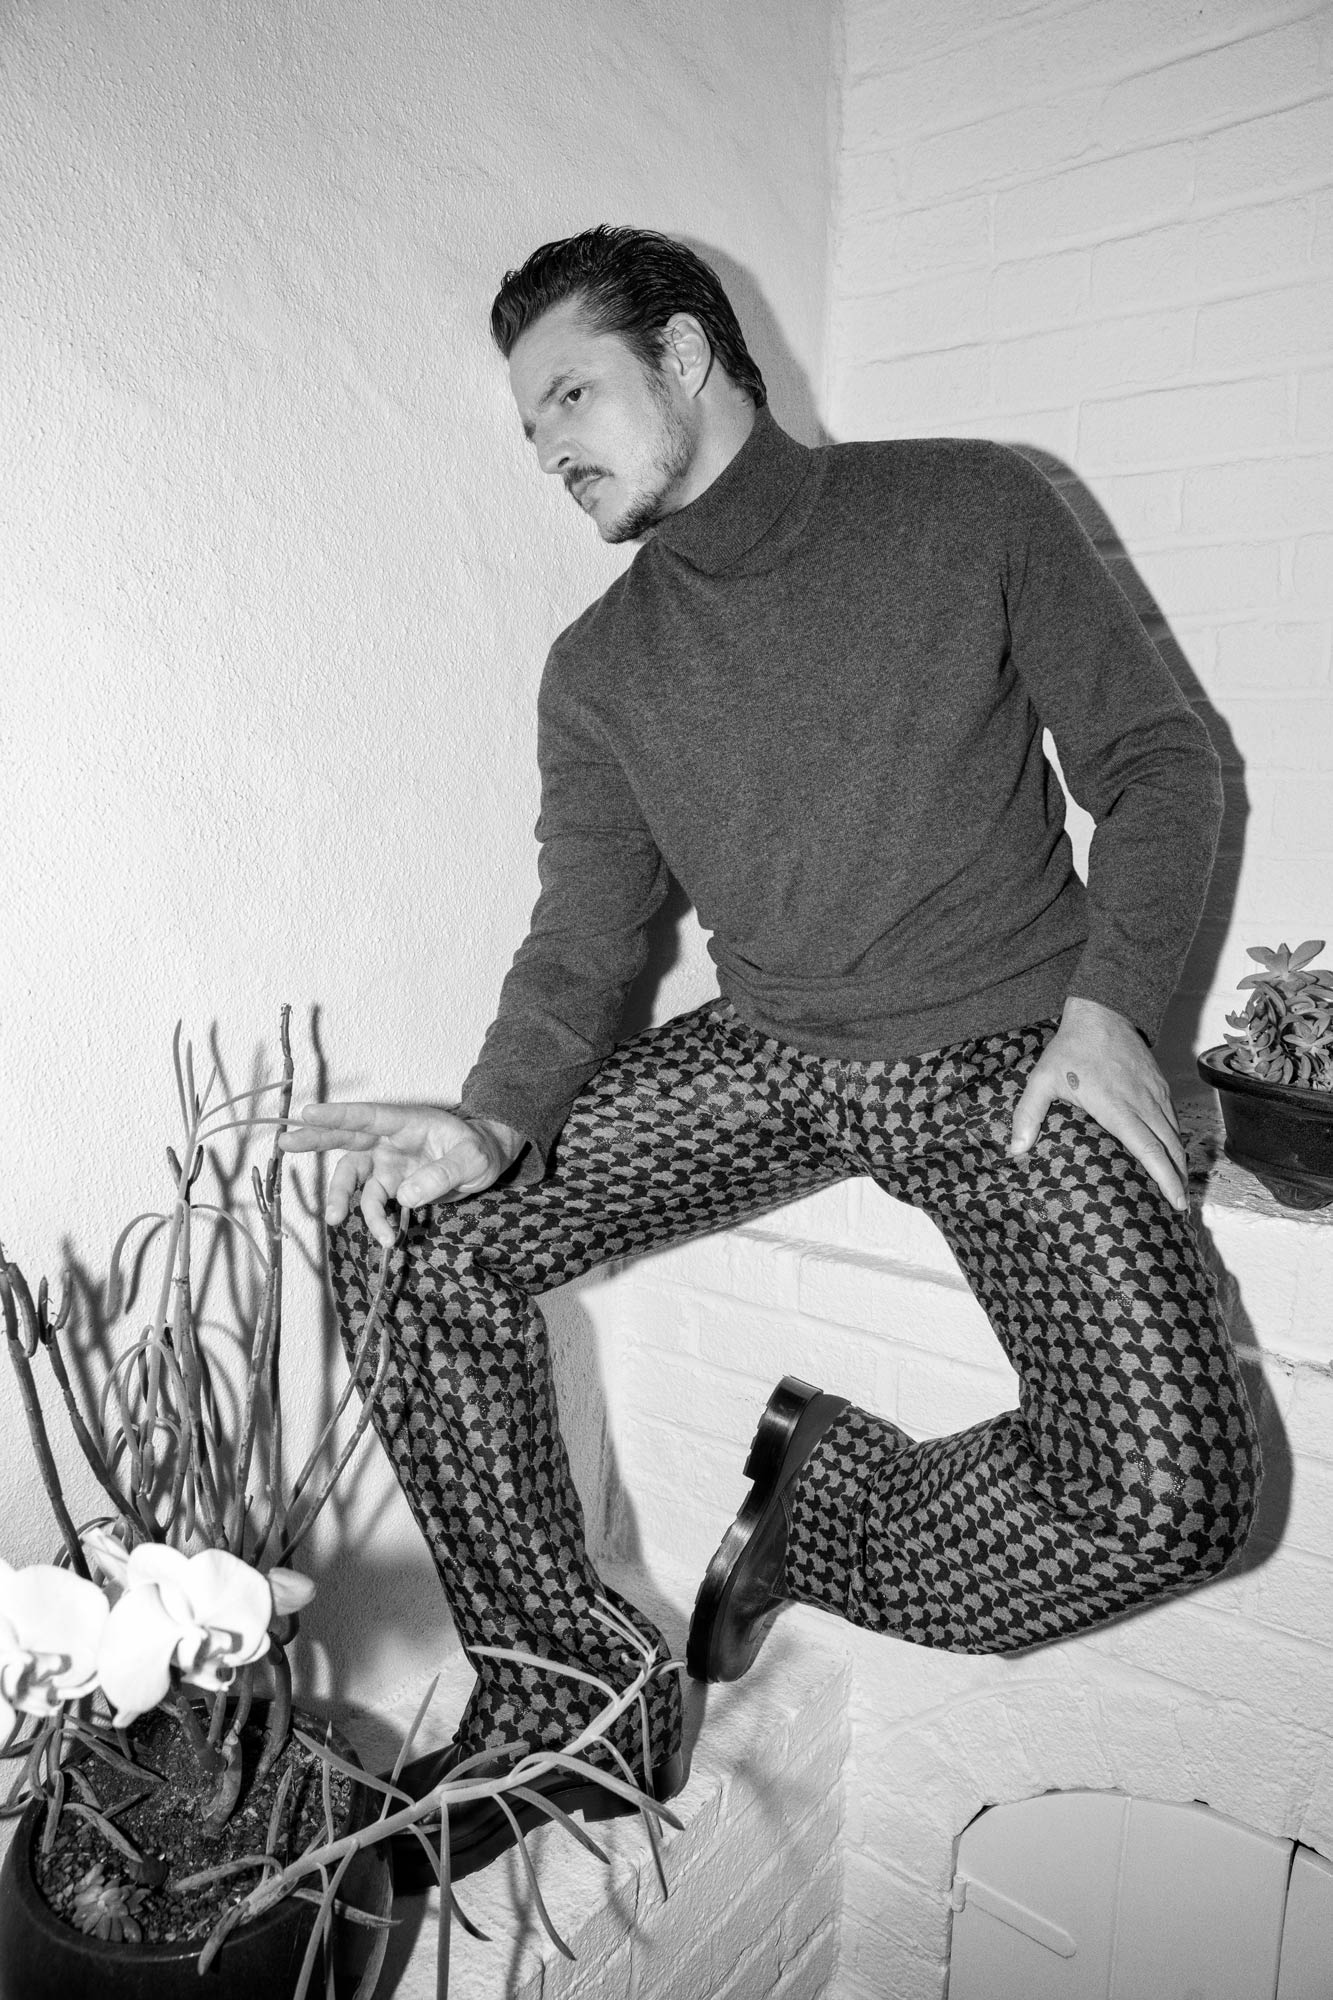 Pedro Pascal is wearing Brunello Cuccinelli's cashmere sweater, Louis Vuitton's trousers, and BOSS' calf-leather shoes.